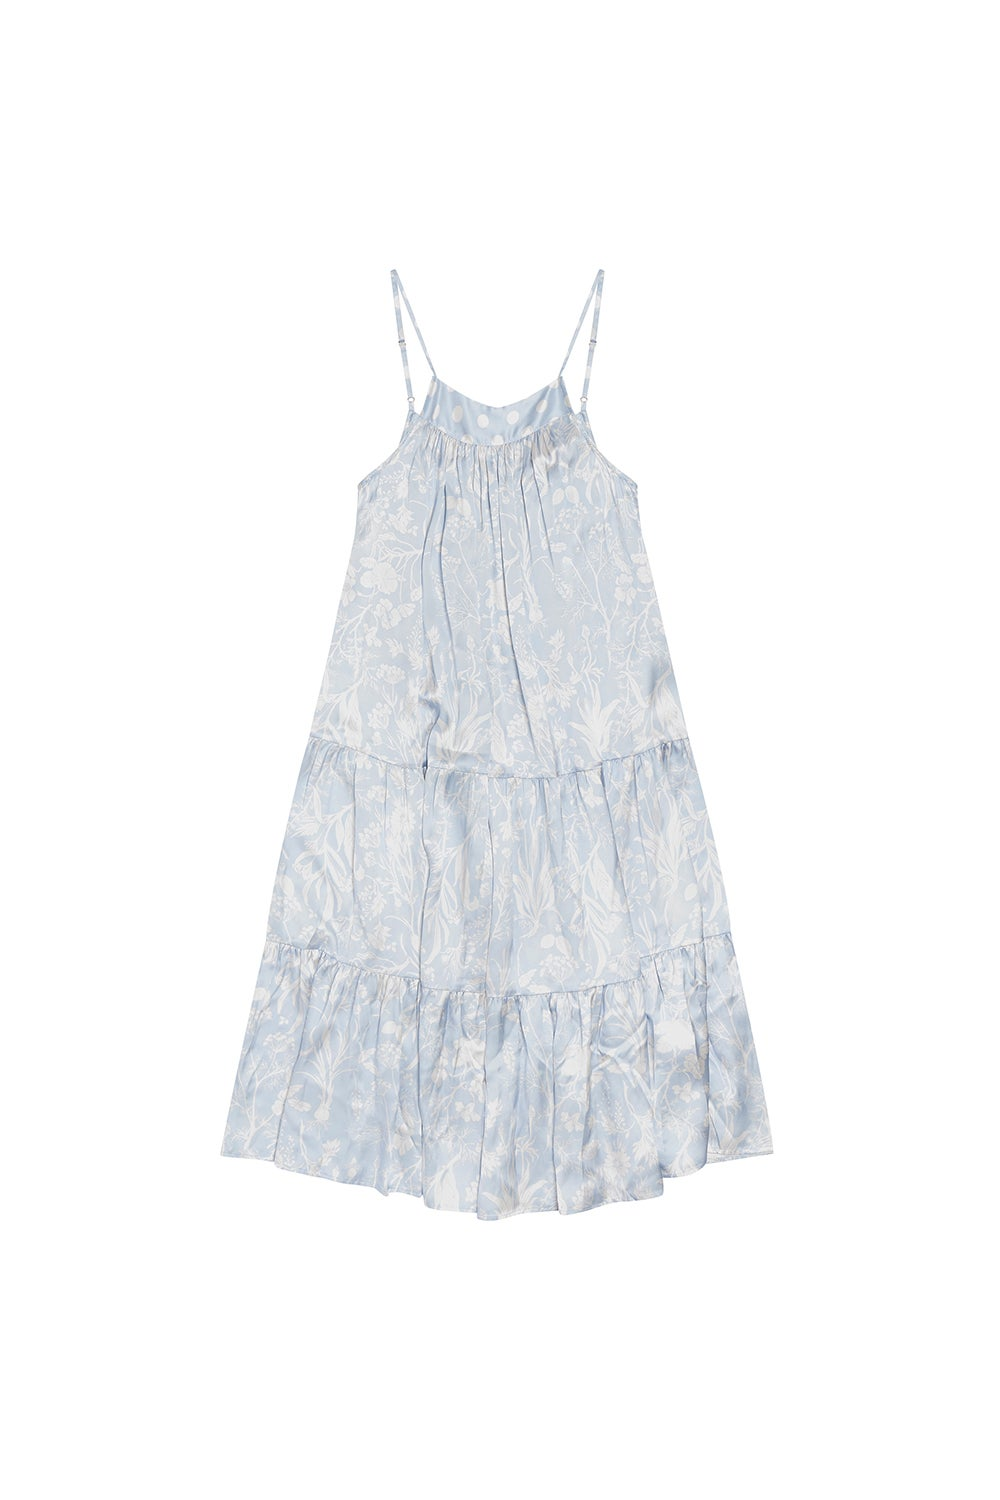 Papinelle x Karen Walker Spliced Ivy Tiered Nightie